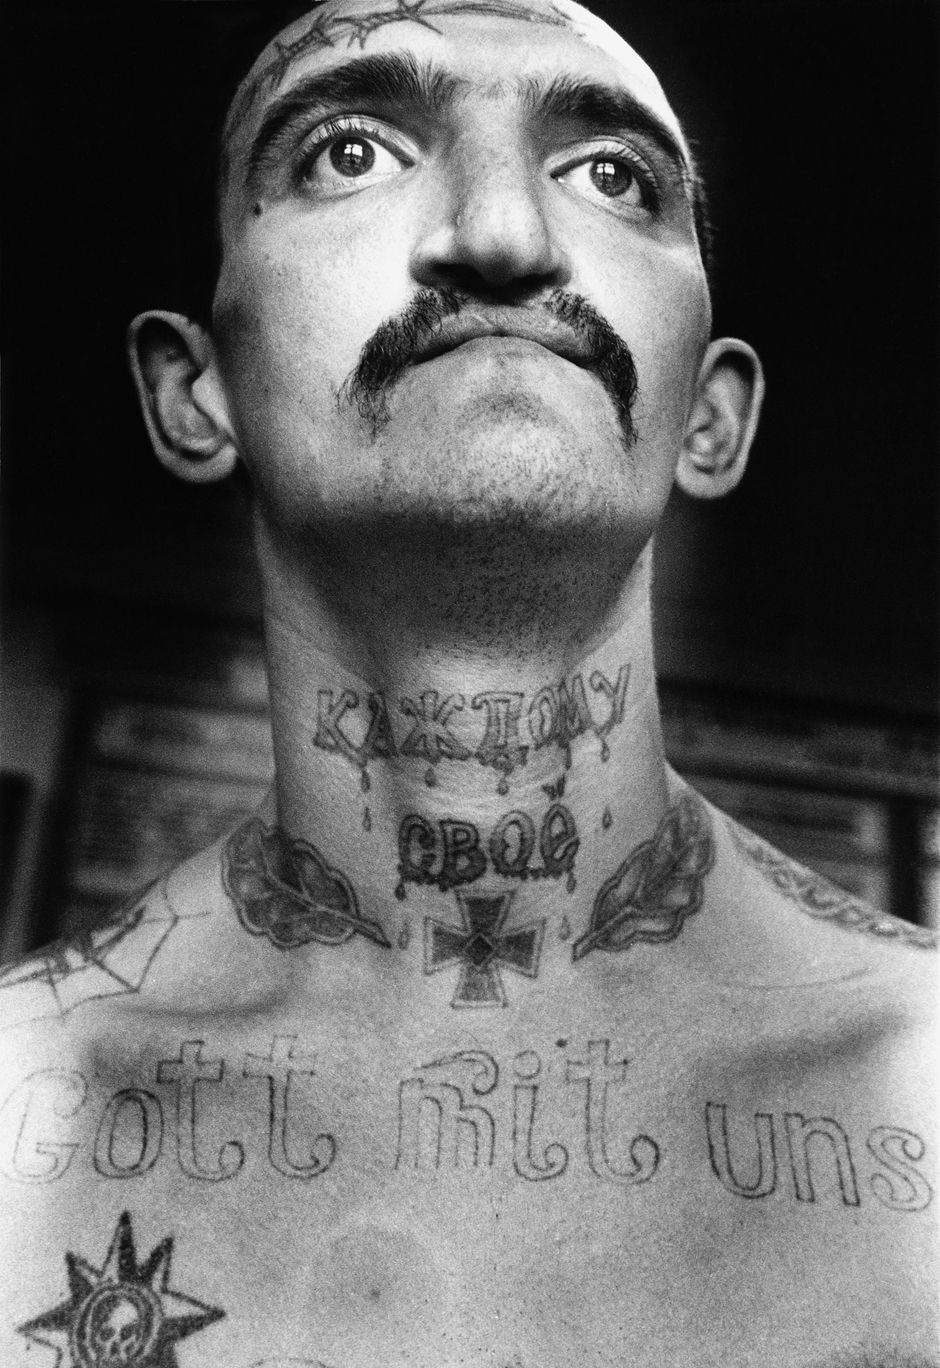 Brighton beach insane face tattoos - Sergei Vasiliev Russian Criminal Tattoo Encyclopaedia Print Gaiety Is The Most Outstanding Feature Of The Soviet Union